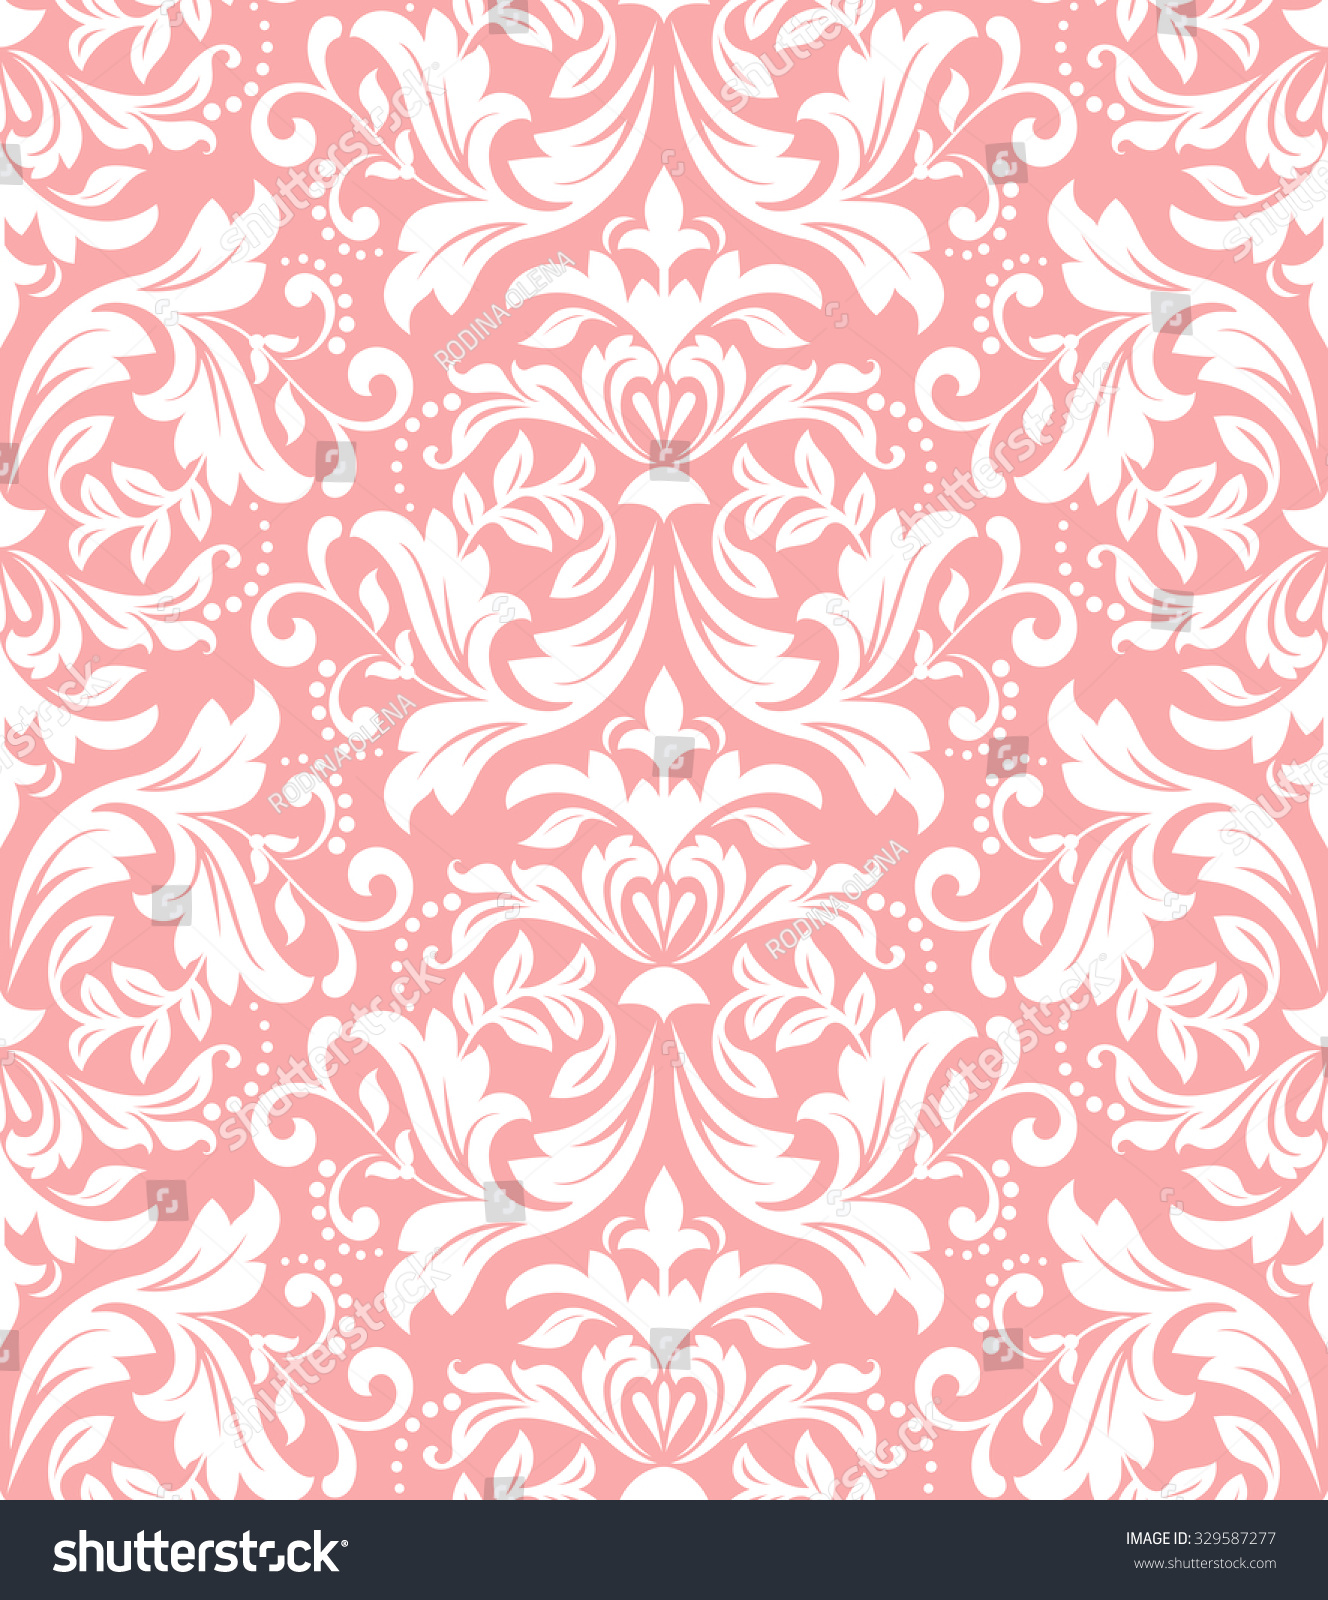 Floral pattern. Wallpaper baroque, damask. Seamless vector background. Pink and white ornament